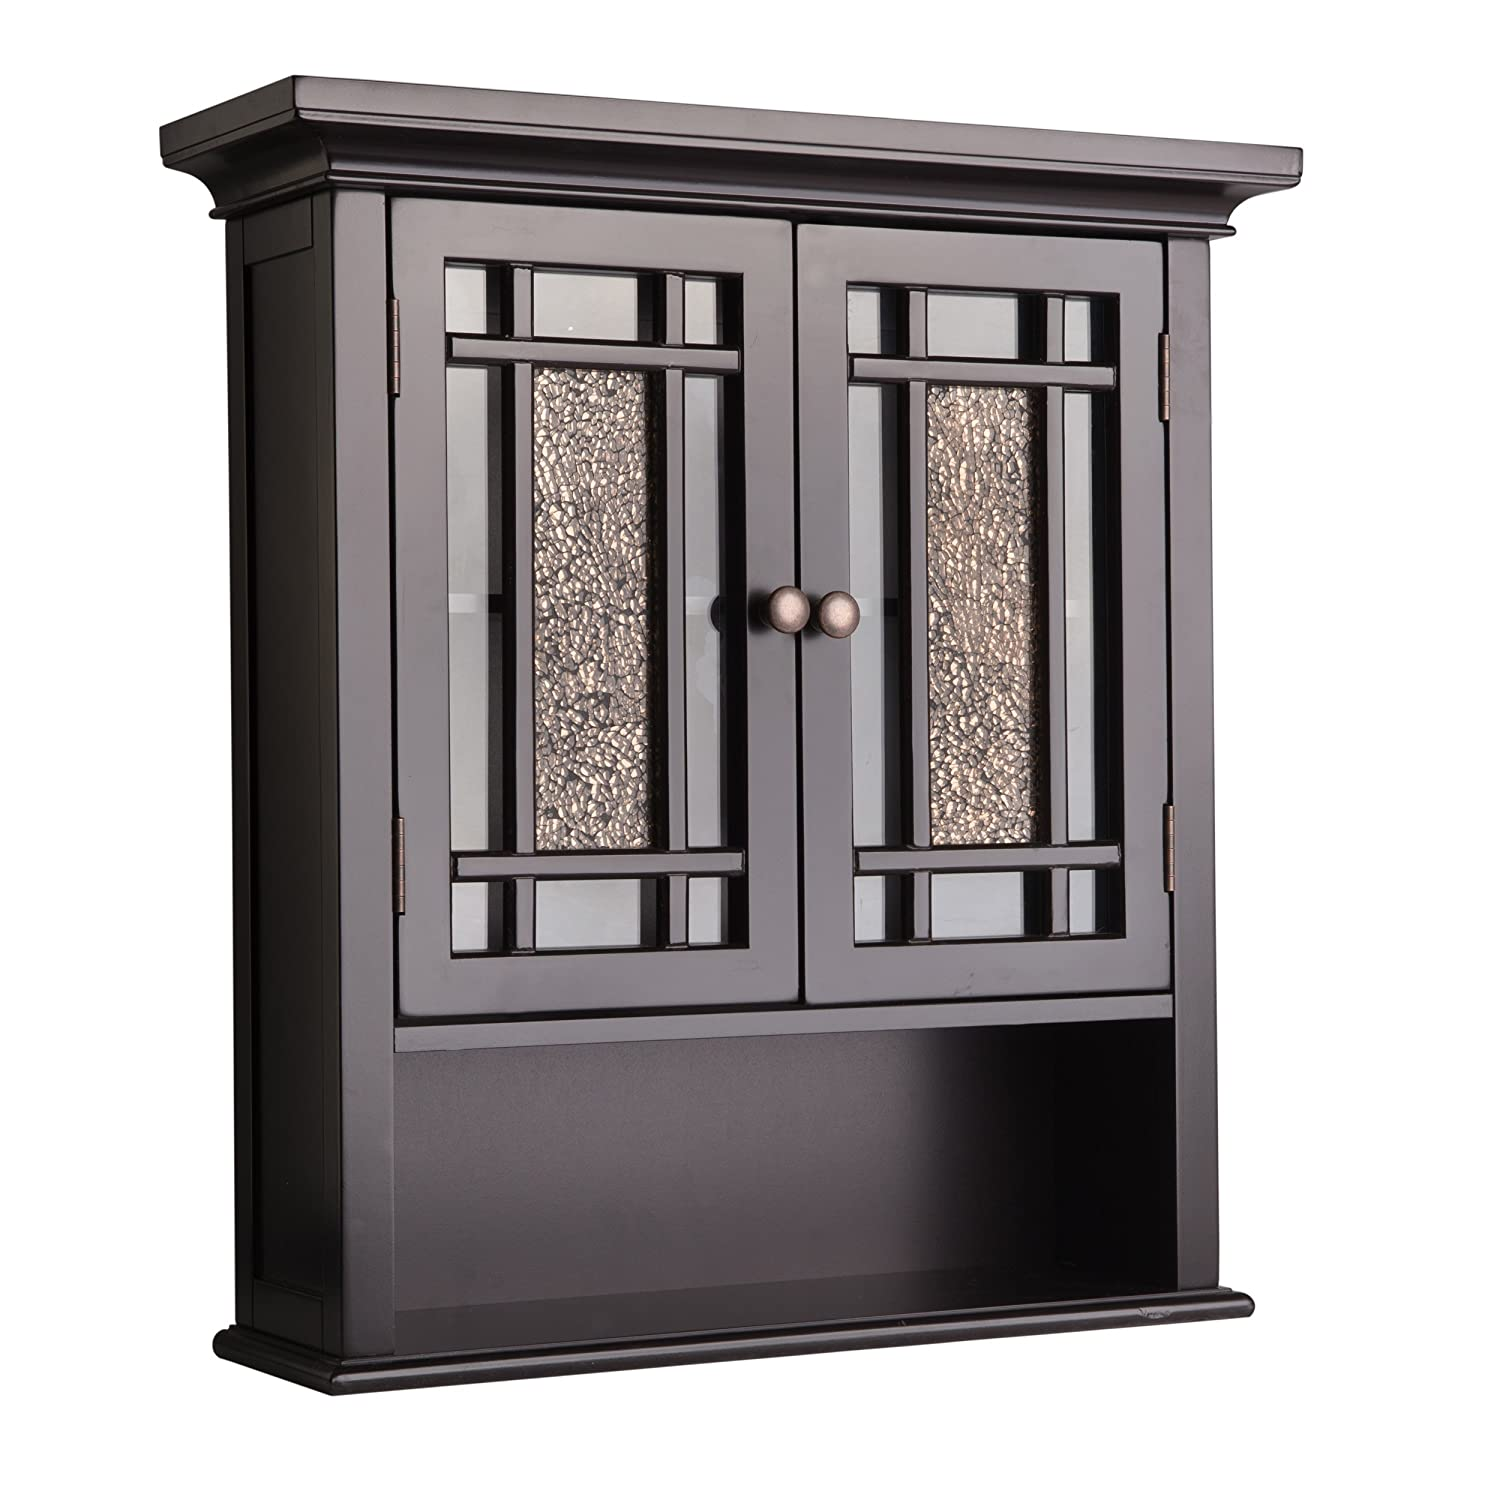 Amazon com elegant home fashions whitney wall cabinet with 2 doors and 1 shelf kitchen dining